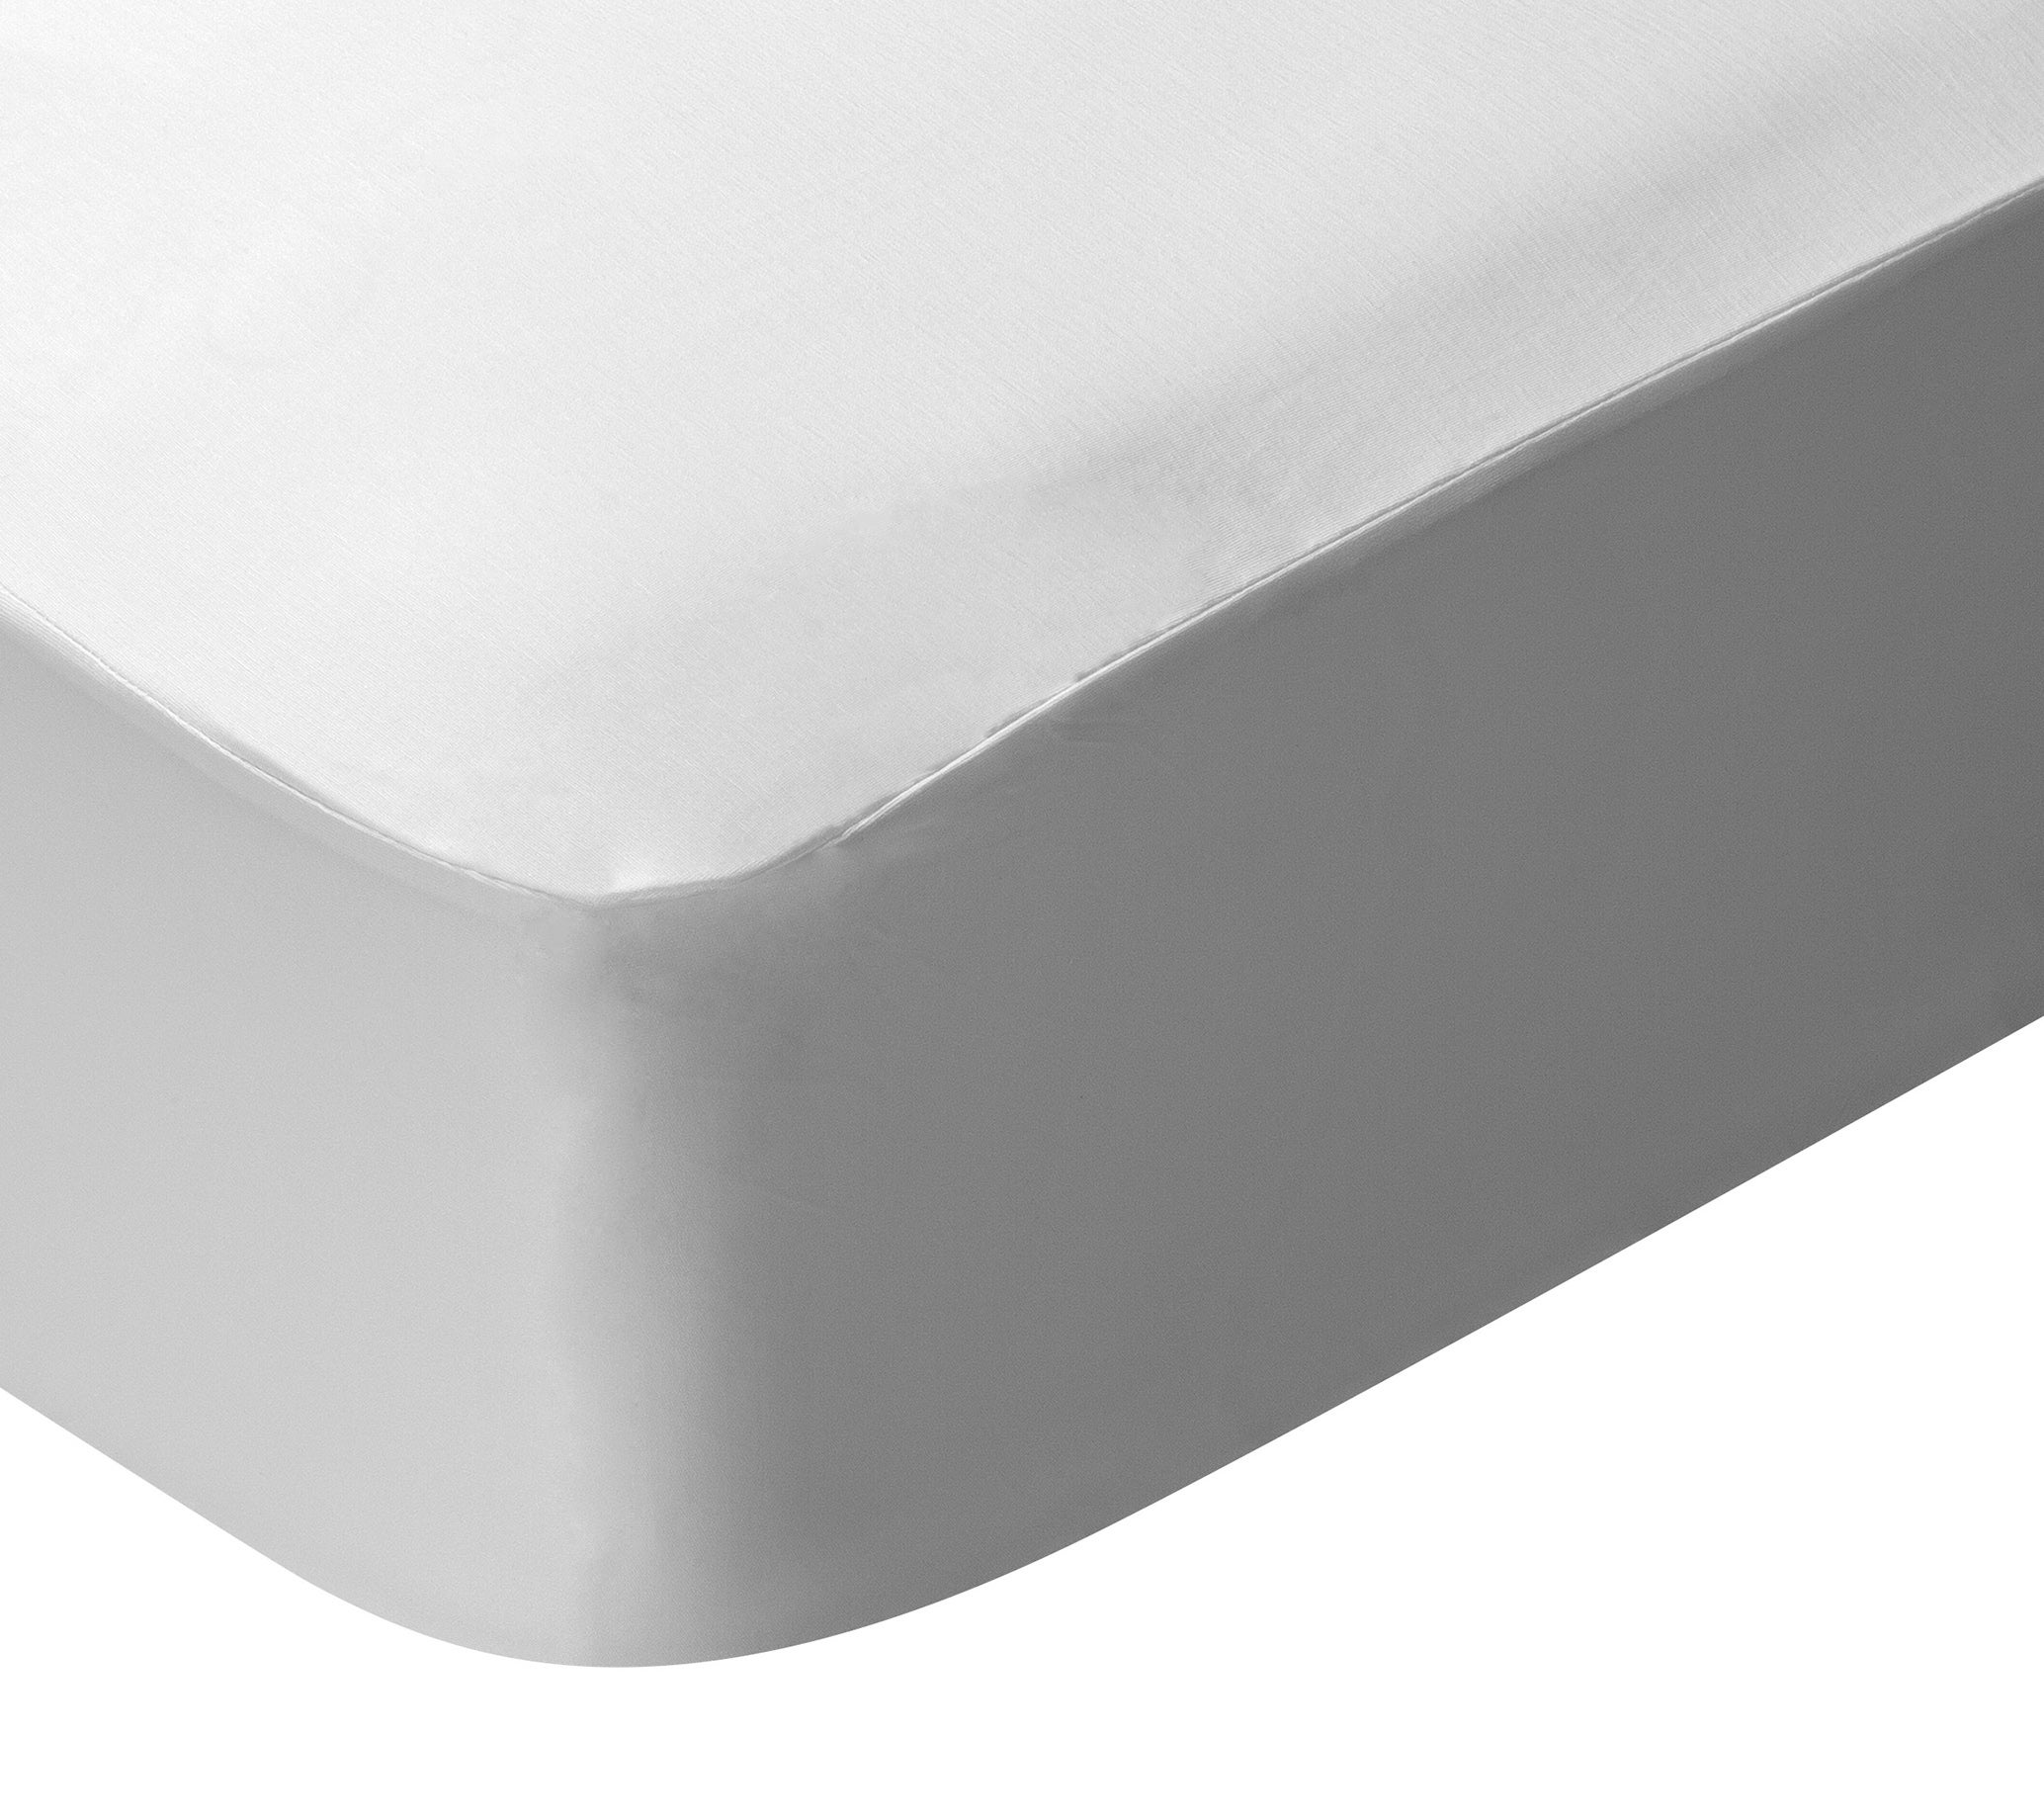 nectar King waterproof mattress protector - corner view